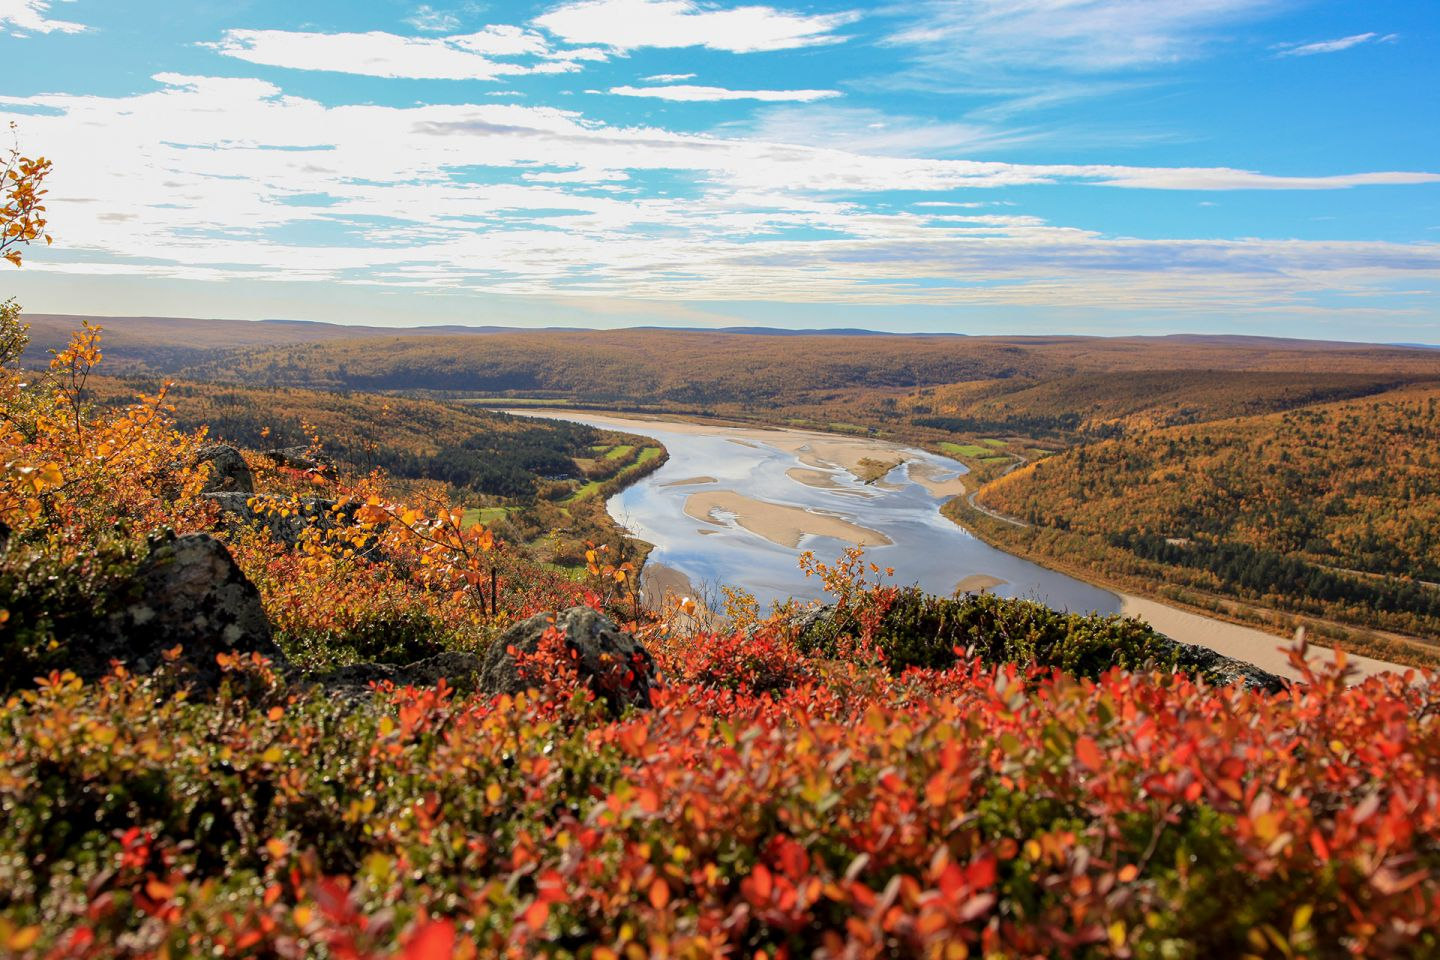 Autumn colors and sand dunes by river in Utsjoki, Finland